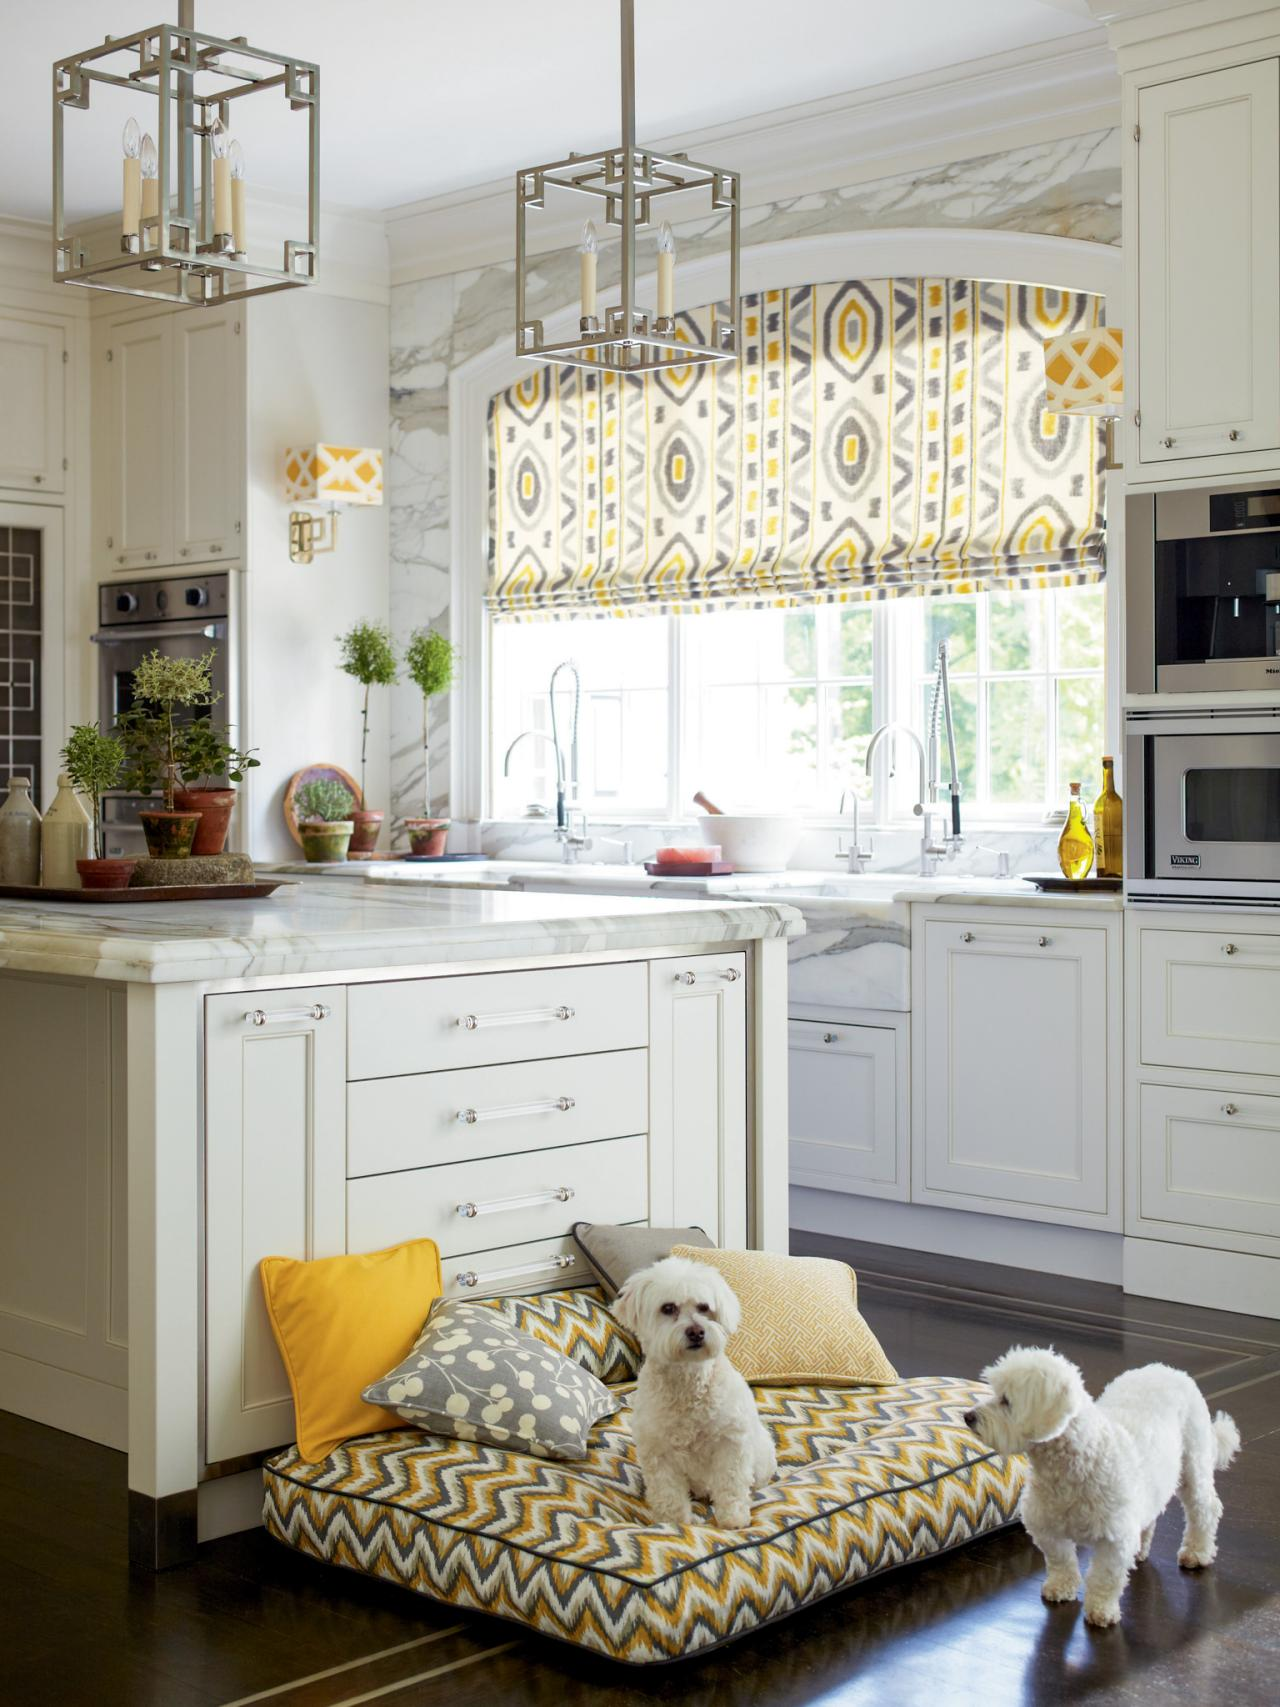 creative kitchen window treatments hgtv pictures ideas hgtv